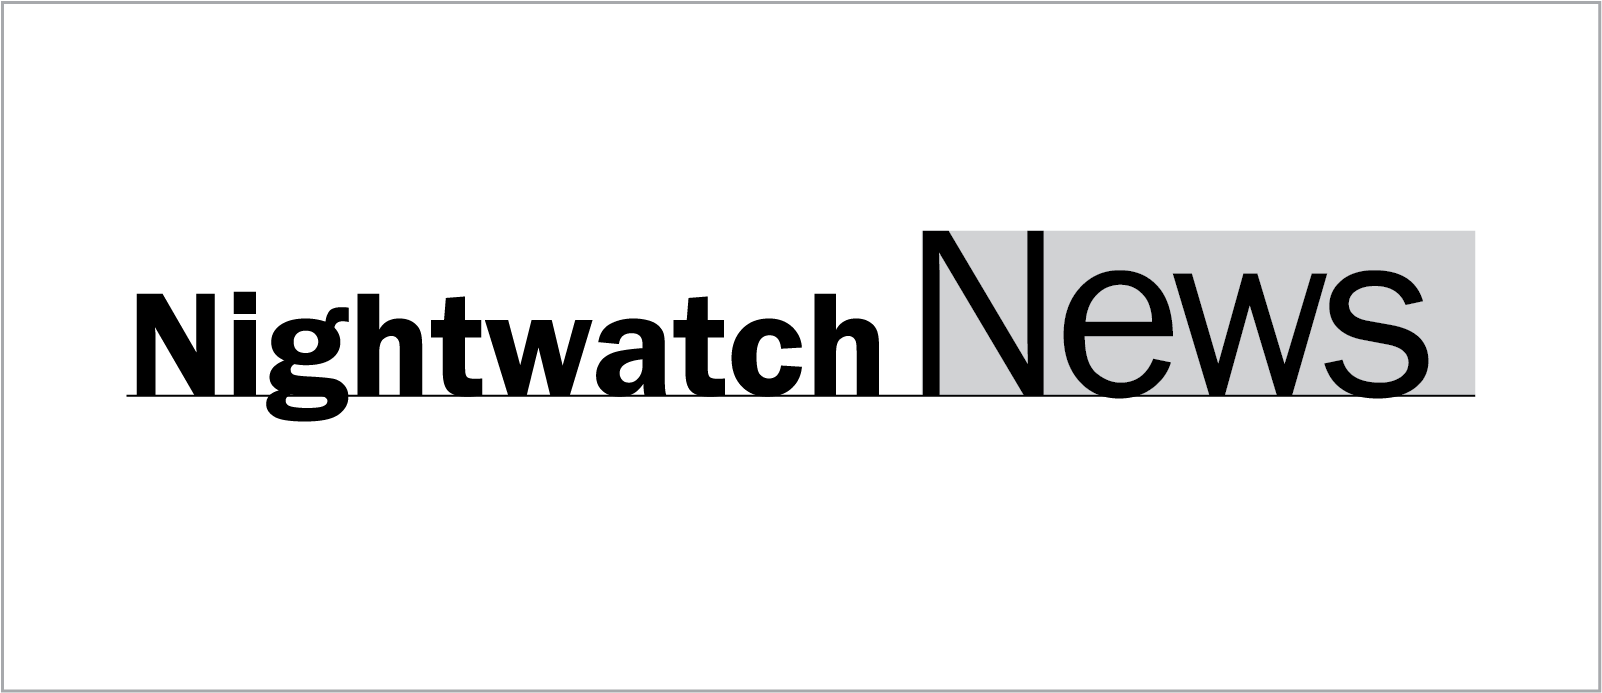 Get more info about Nightwatch News